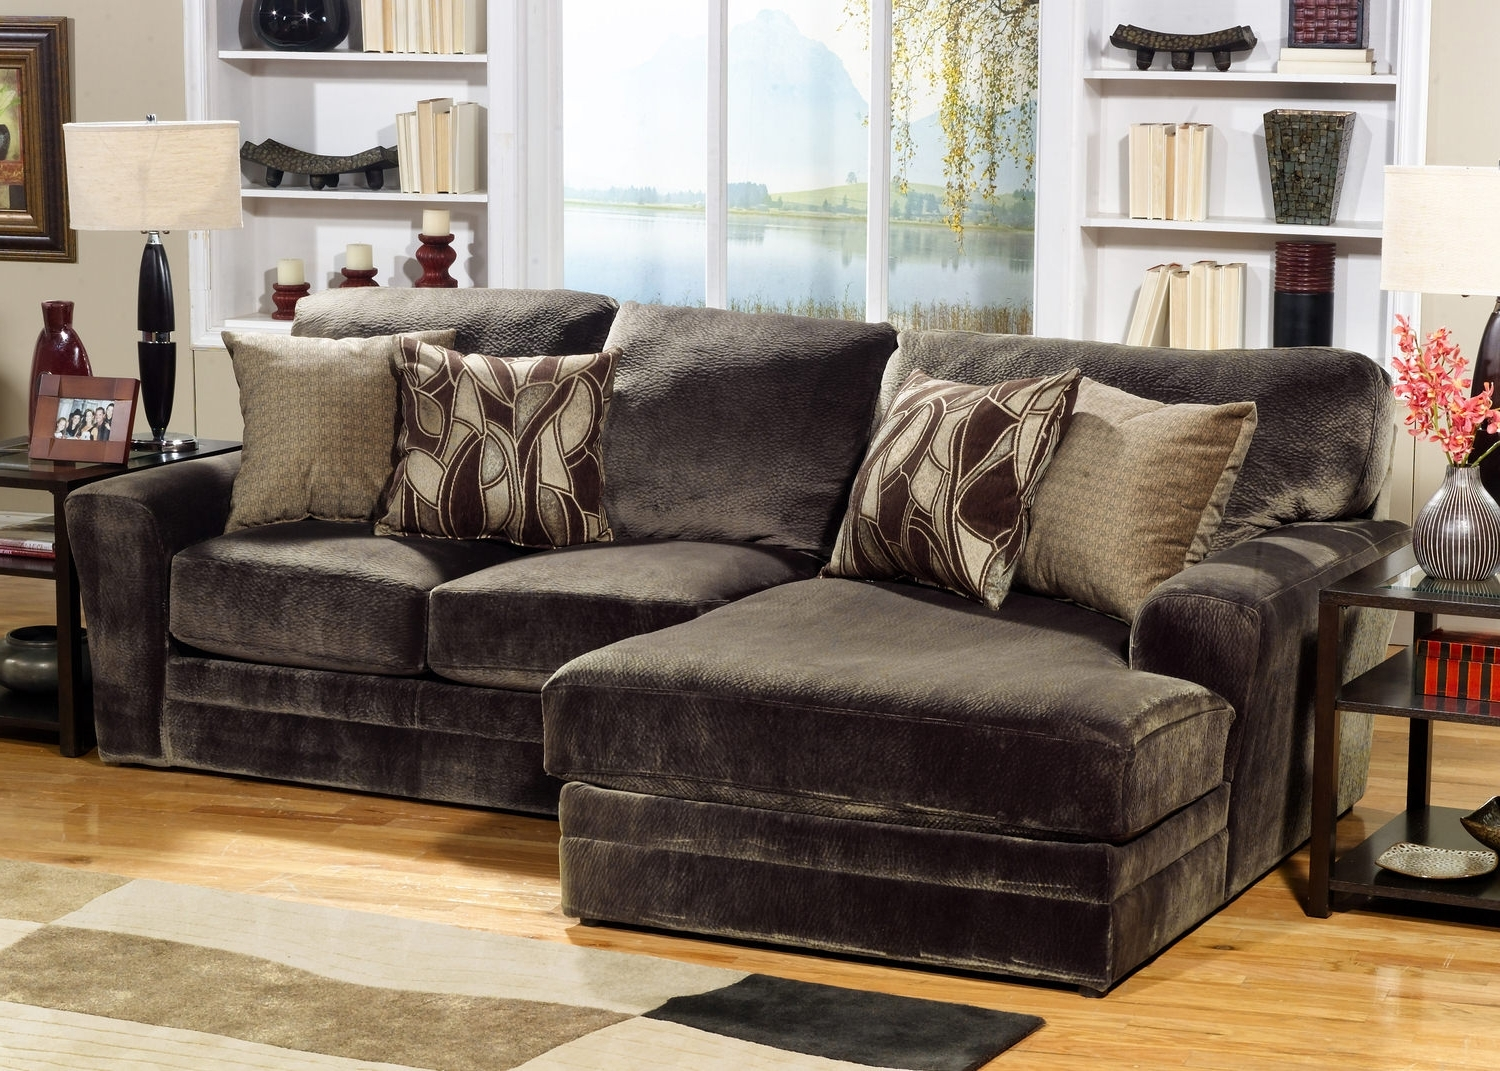 Hom Furniture With Regard To Famous St Cloud Mn Sectional Sofas (View 7 of 20)